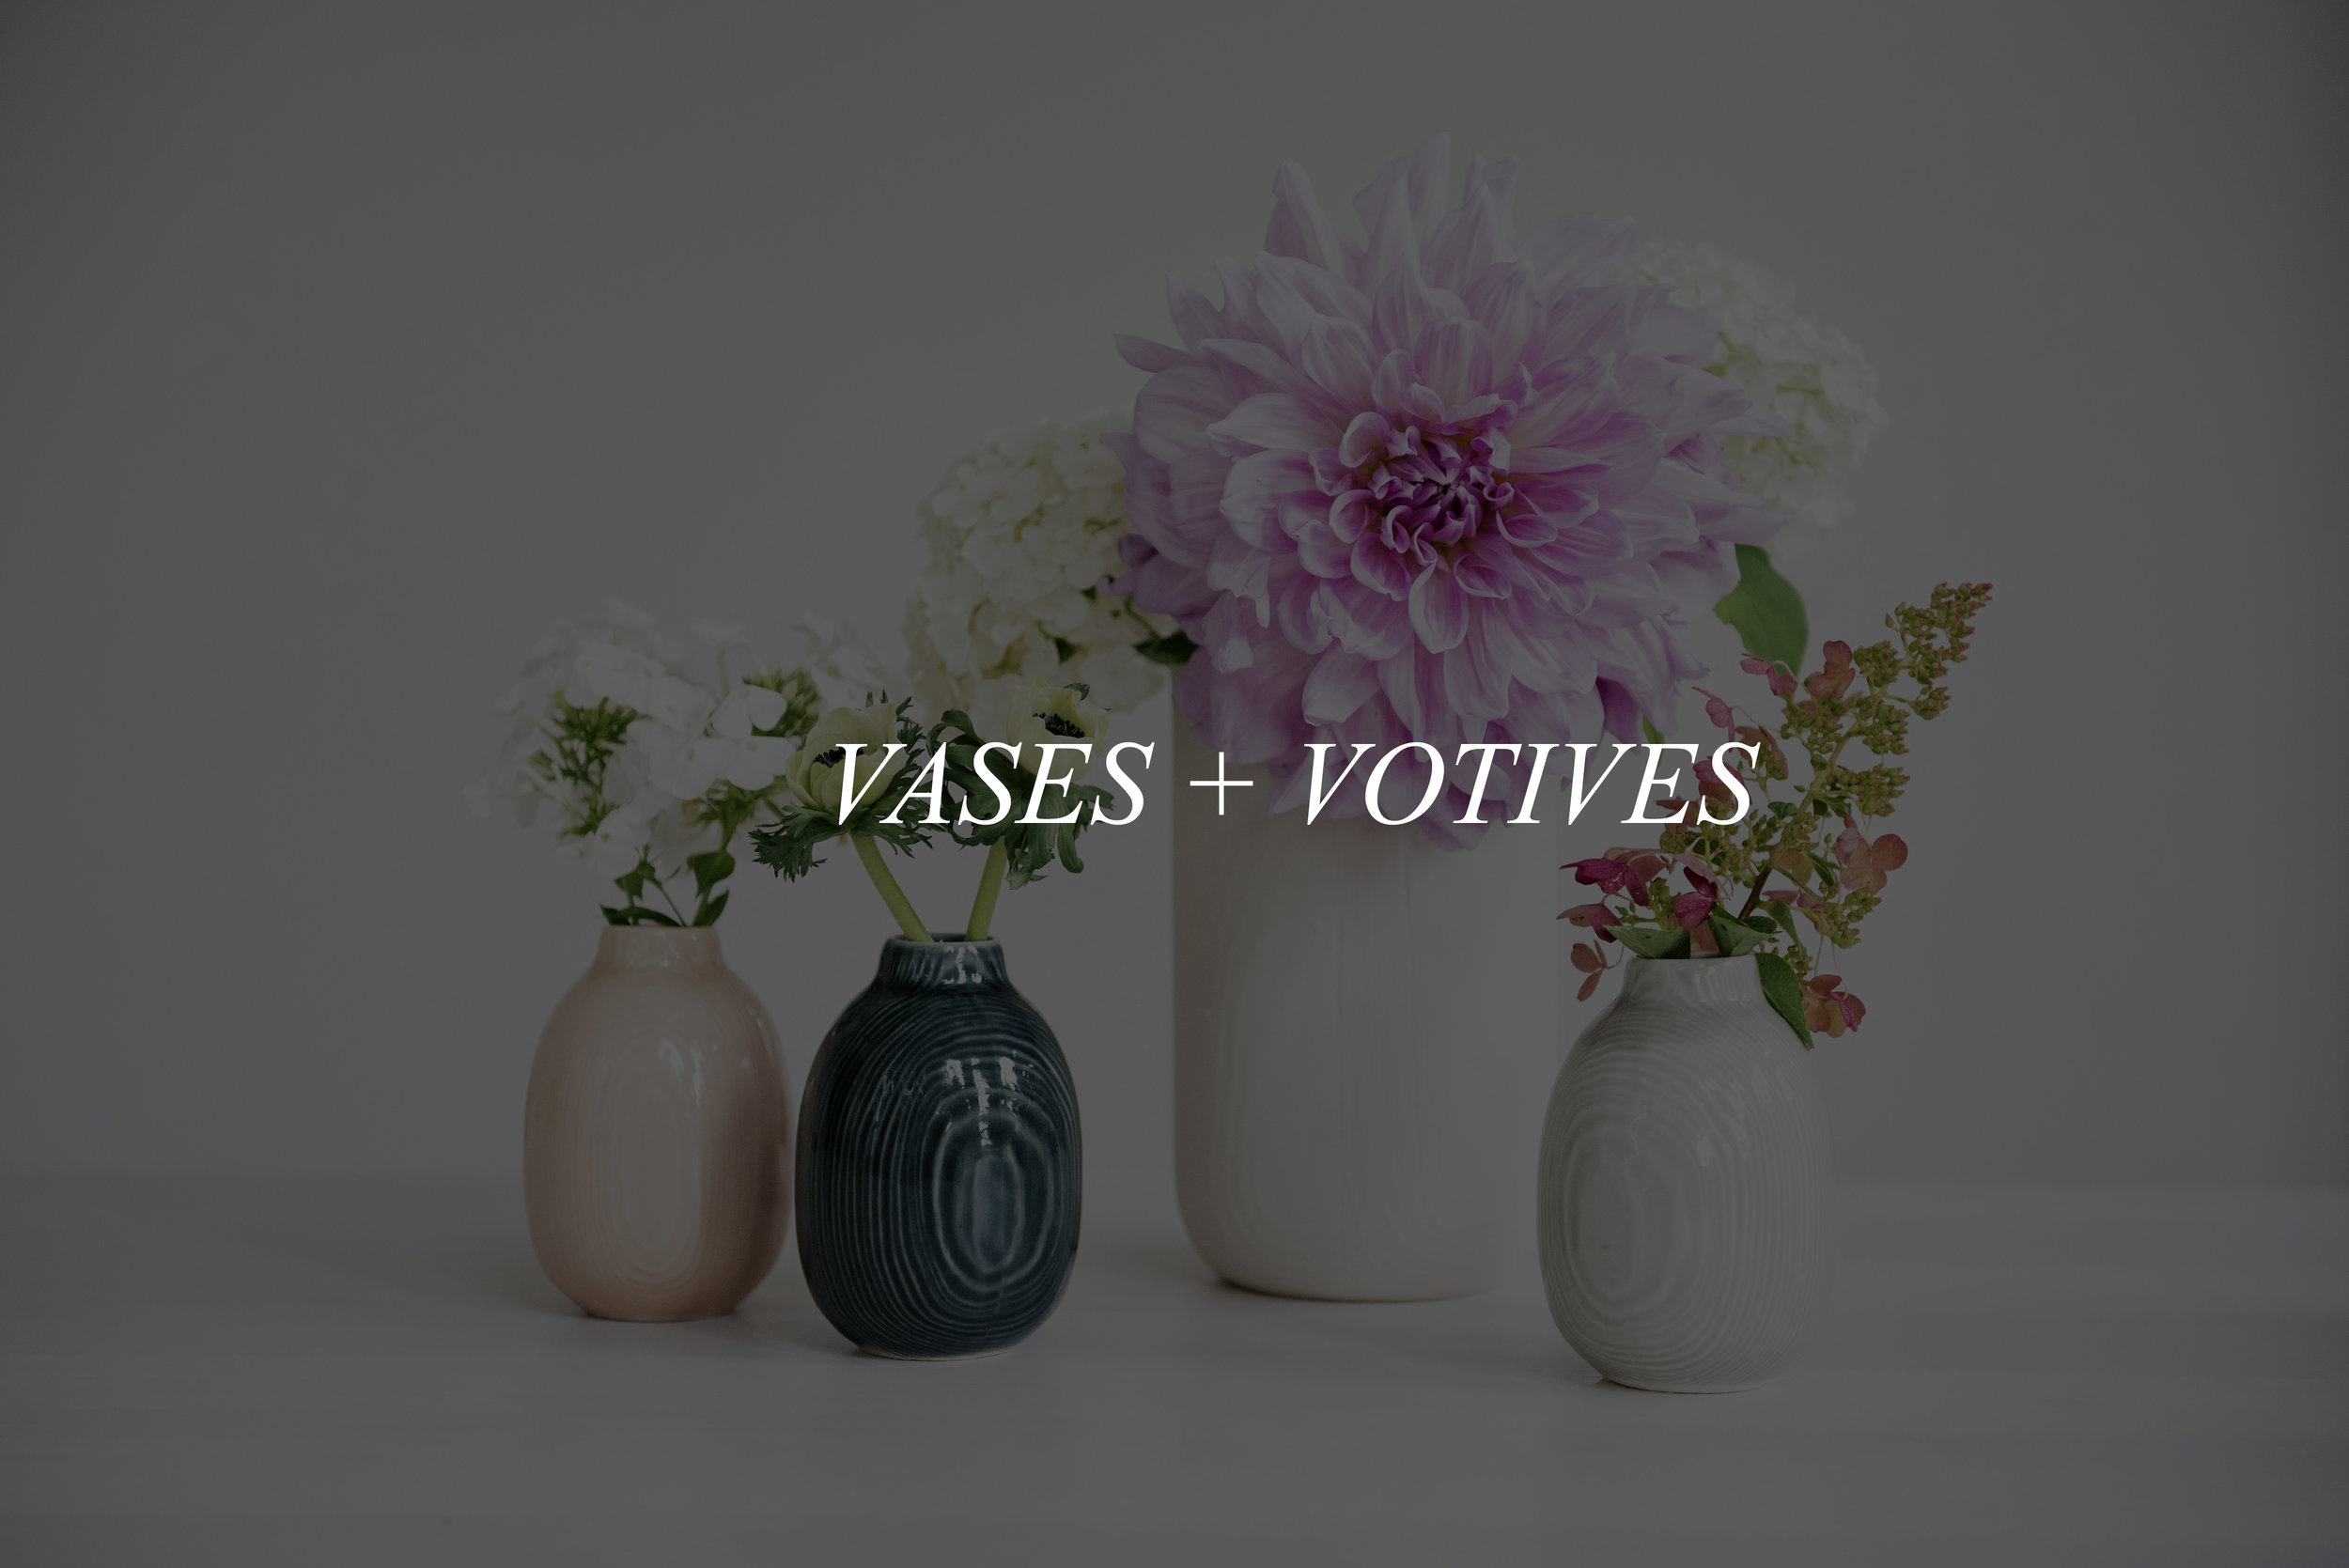 Vases and votives.jpg